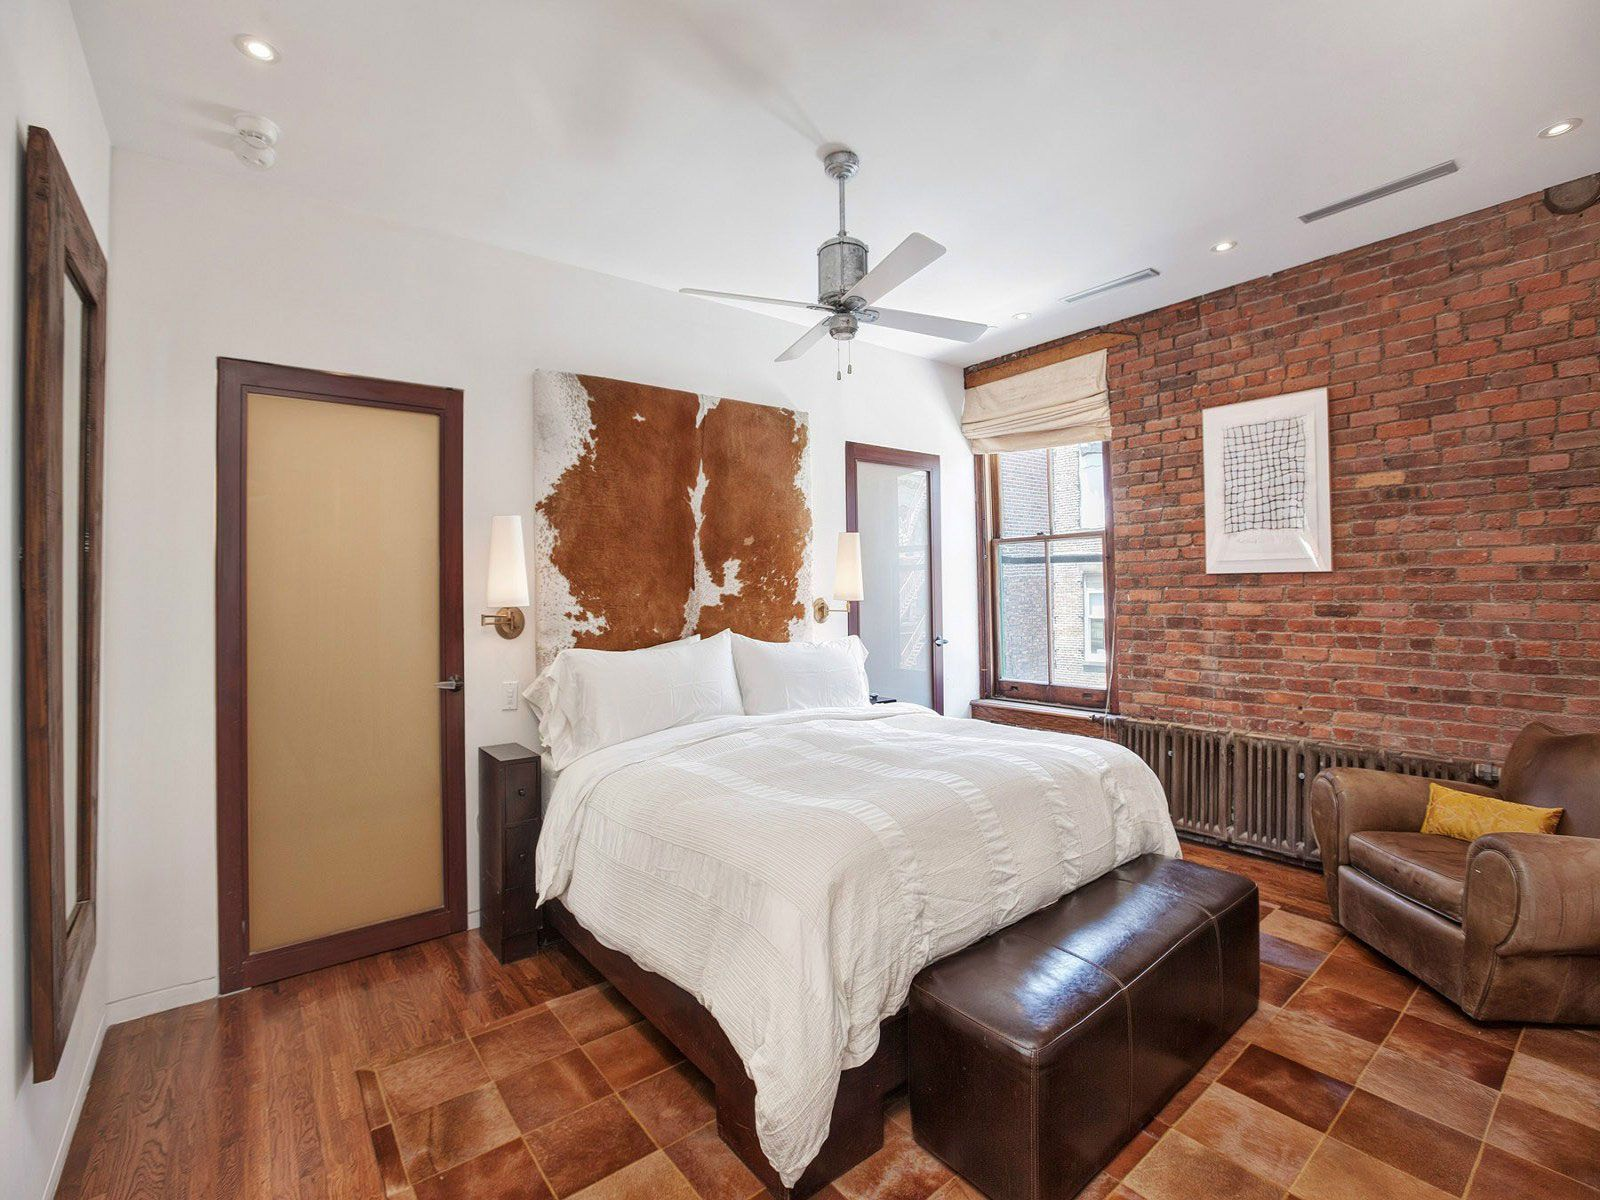 ... Ultimate Soho Exposed Brick And Wood Beams Loft On Prince Street In New  York 07 ... Part 53